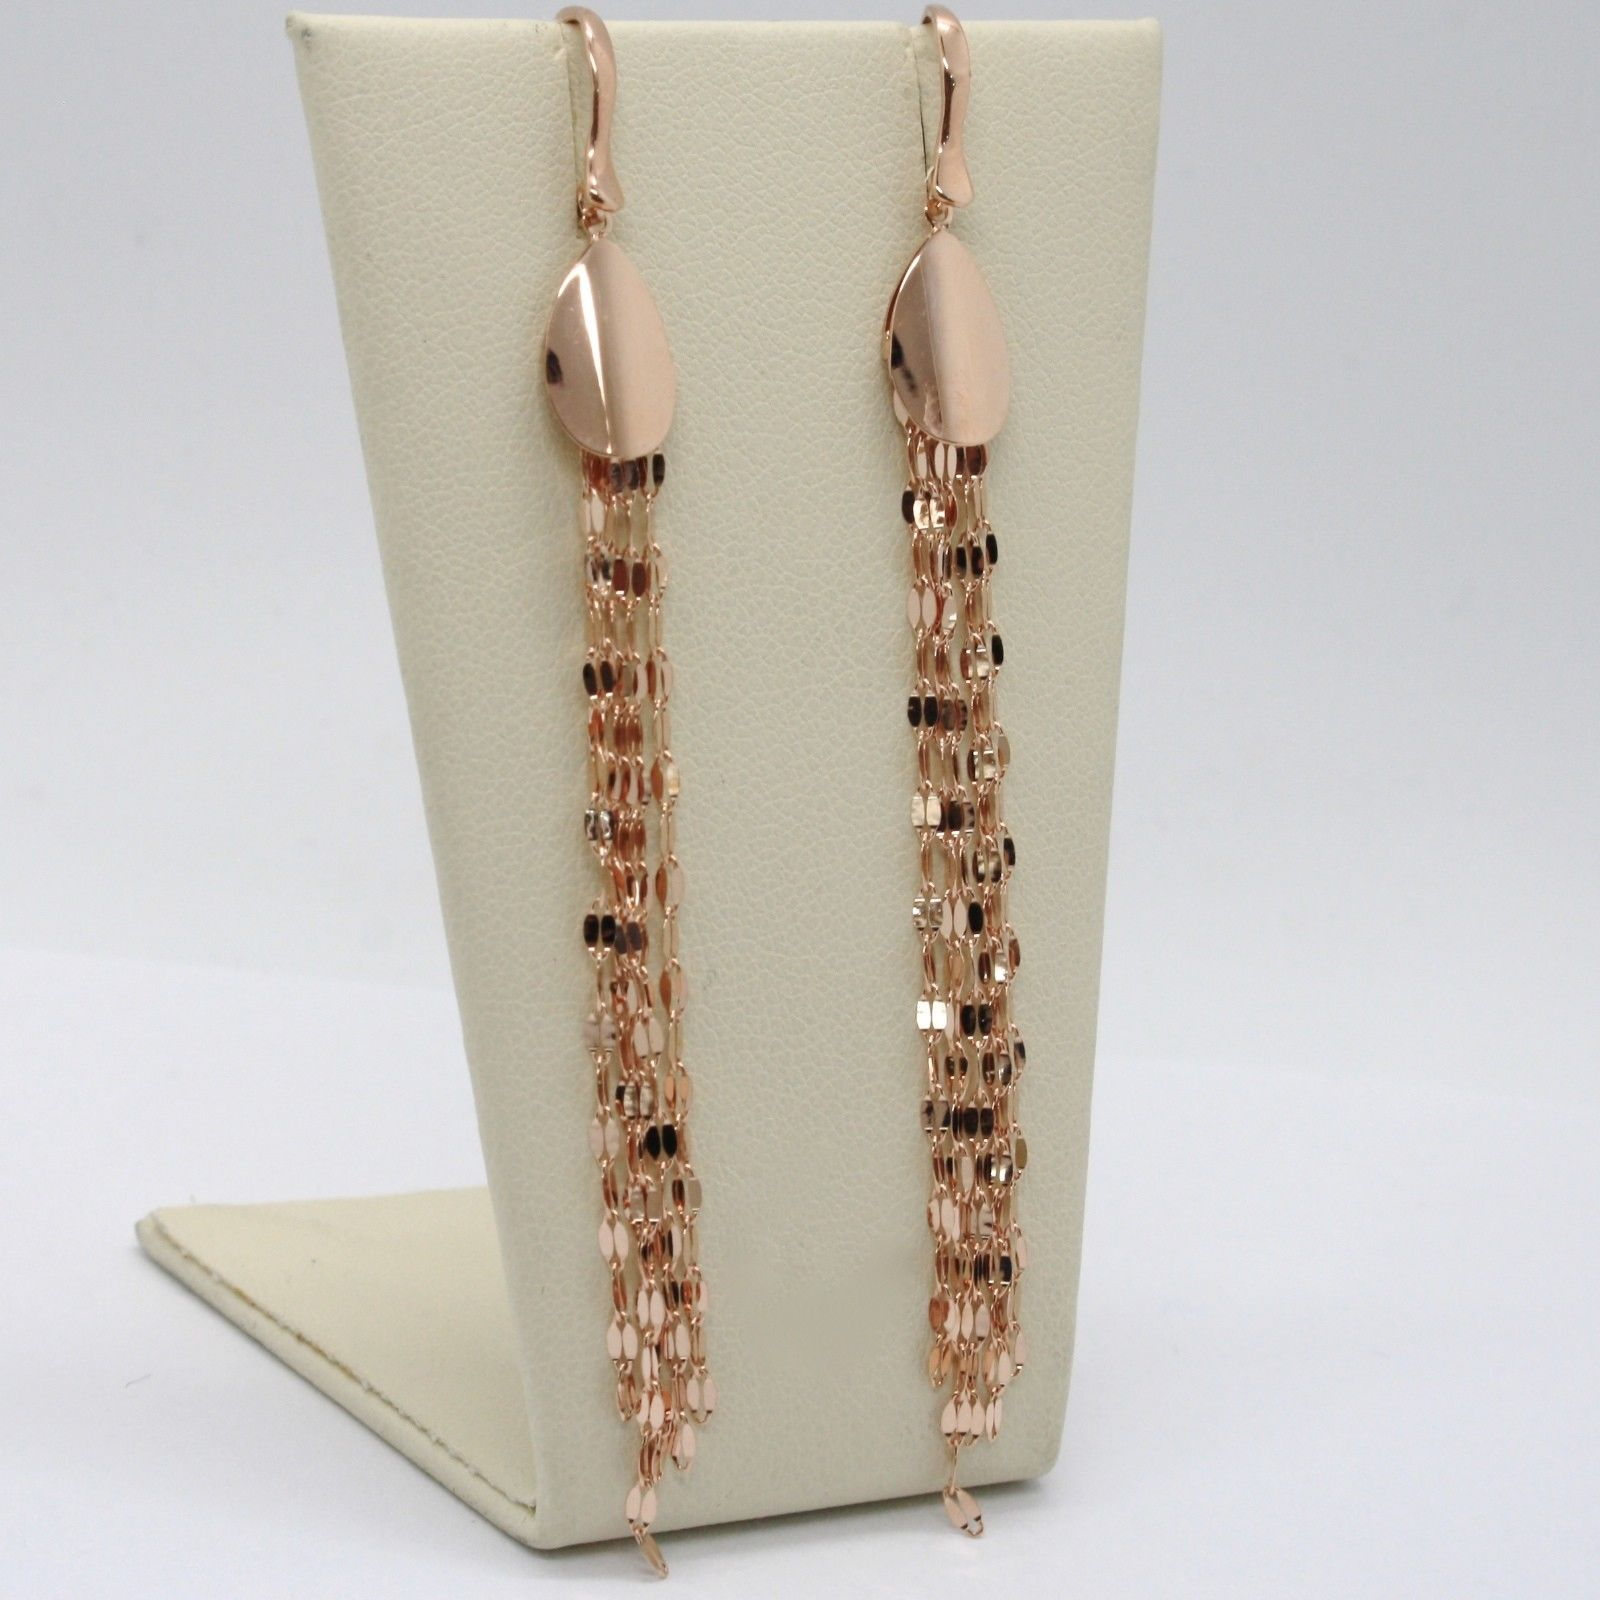 SOLID 18K ROSE GOLD LONG PENDANT EARRINGS WITH DROP AND FRINGES, MADE IN ITALY